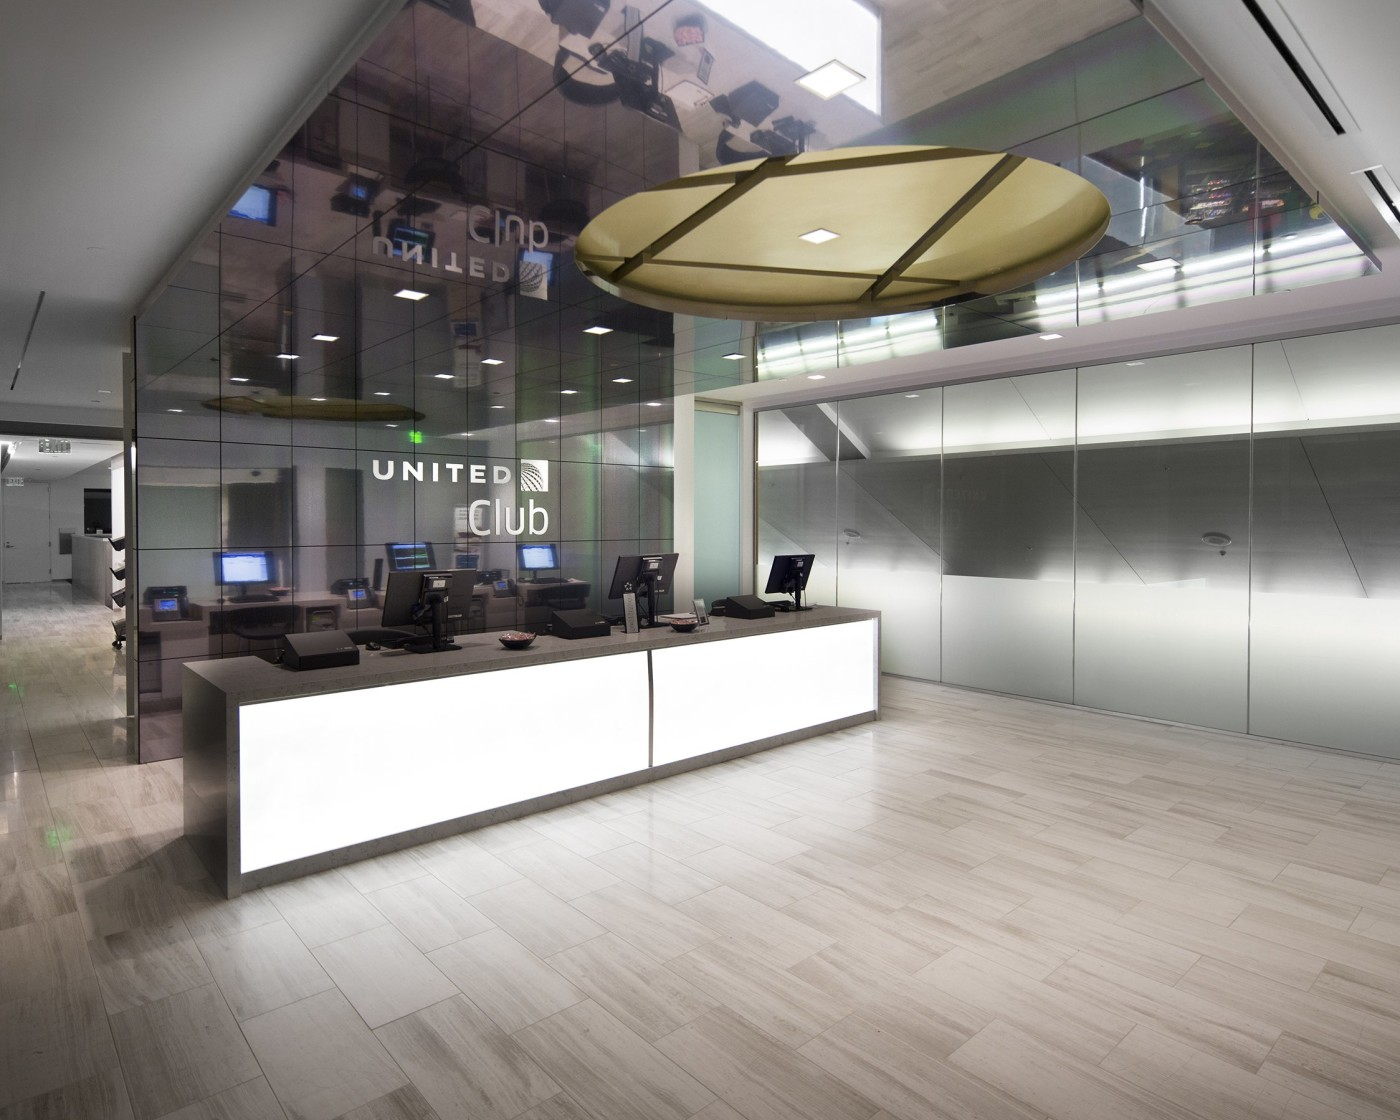 Httpsghiroph Comseattle Airport Lounges The Ultimate Guide: The Ultimate Guide To United Club